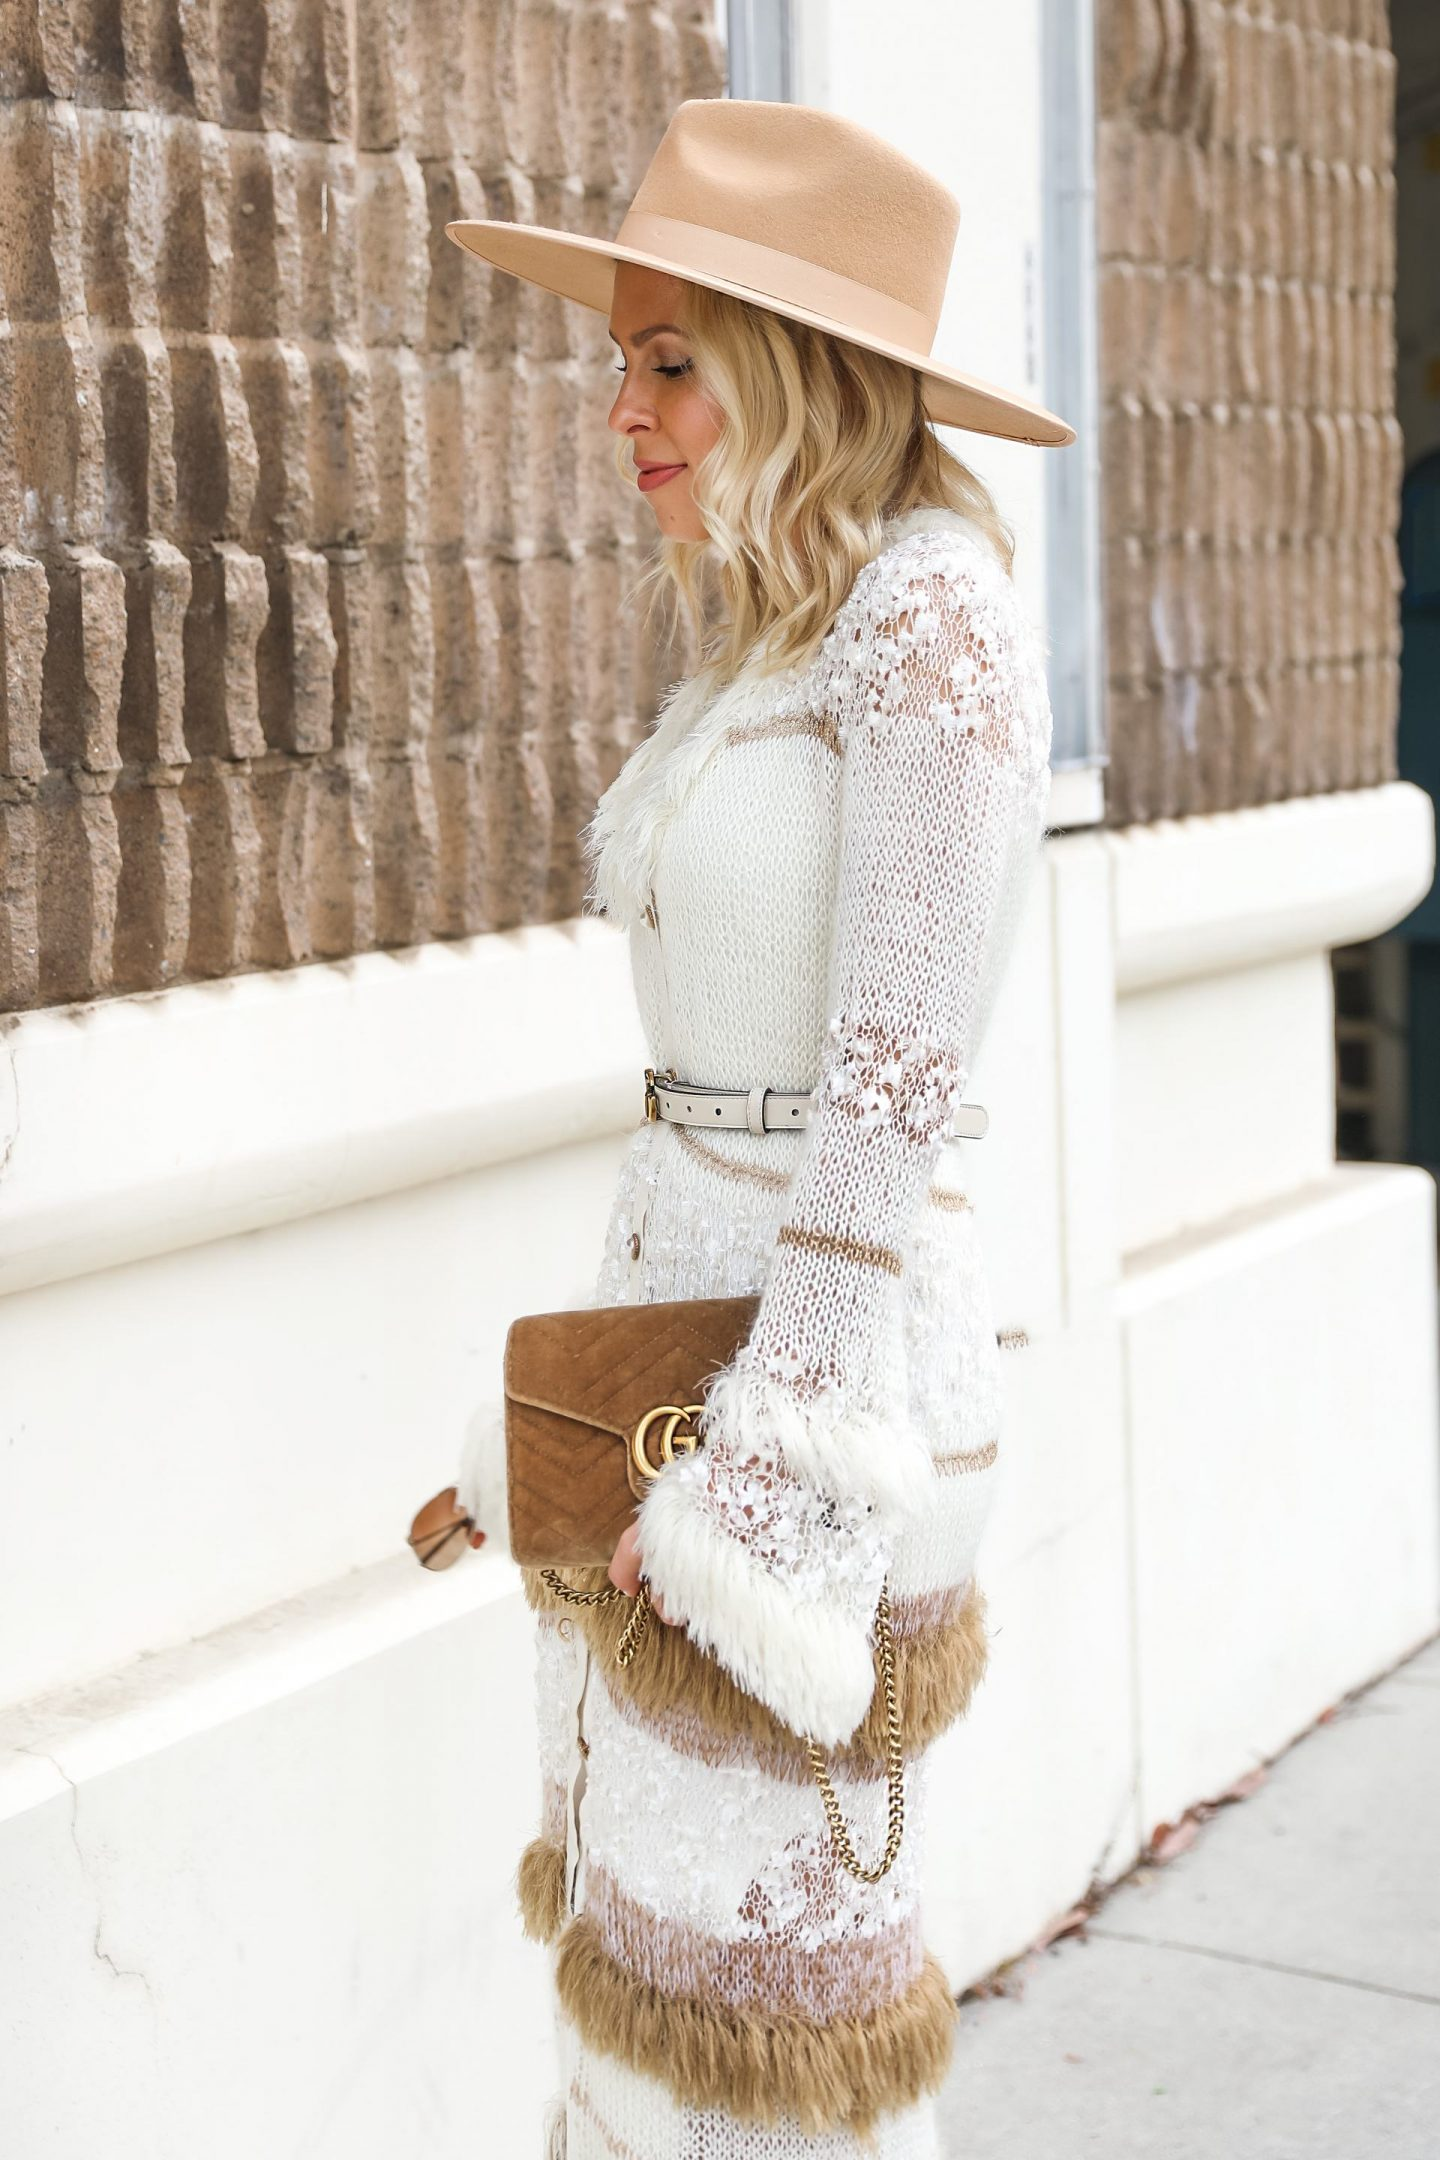 Neutral fall style inspiration. Layered knits, best sweaters and accessories, featured by San Francisco fashion blogger Lombard & Fifth.